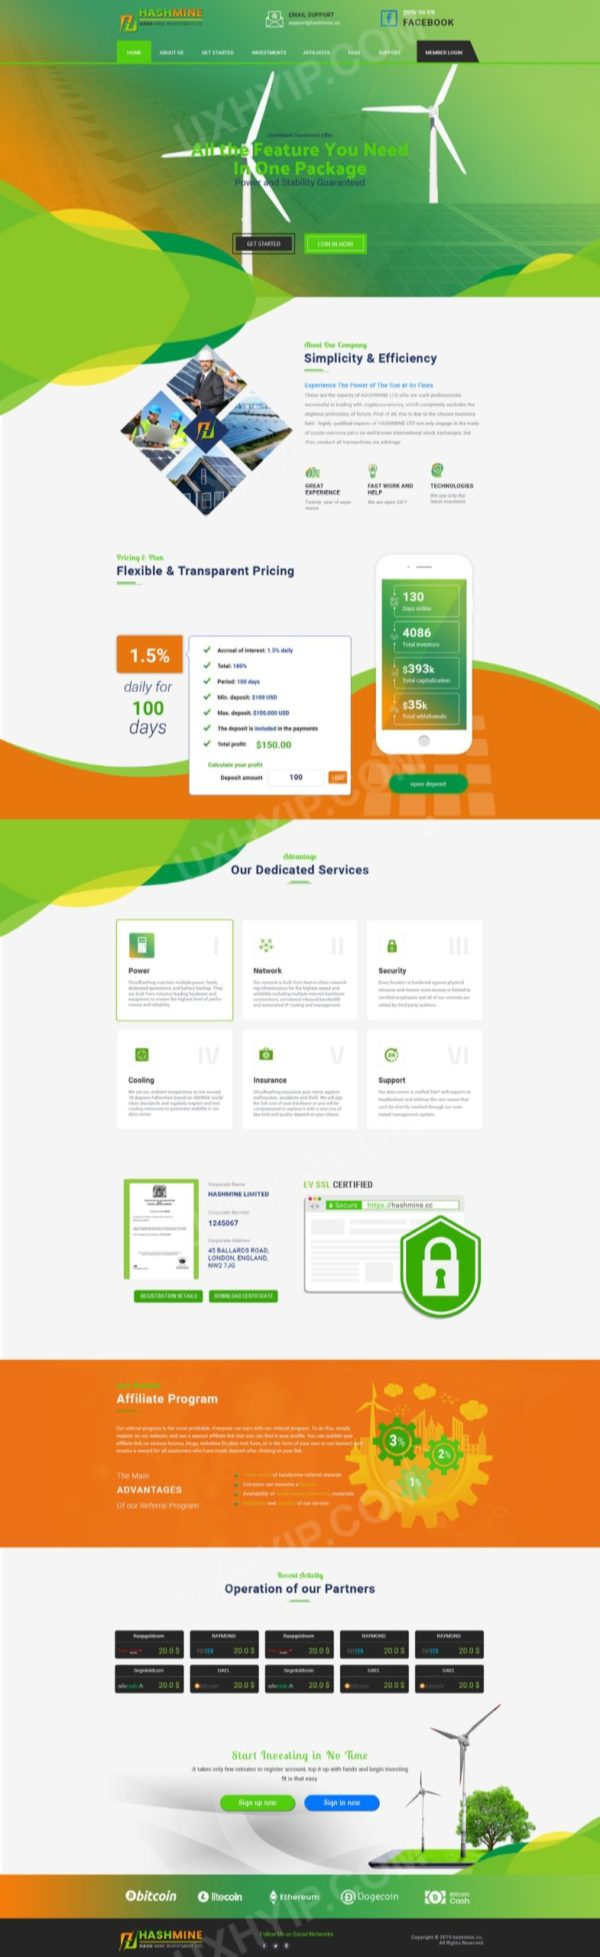 HYIP Template - Investment Business Template HashMine ID 106